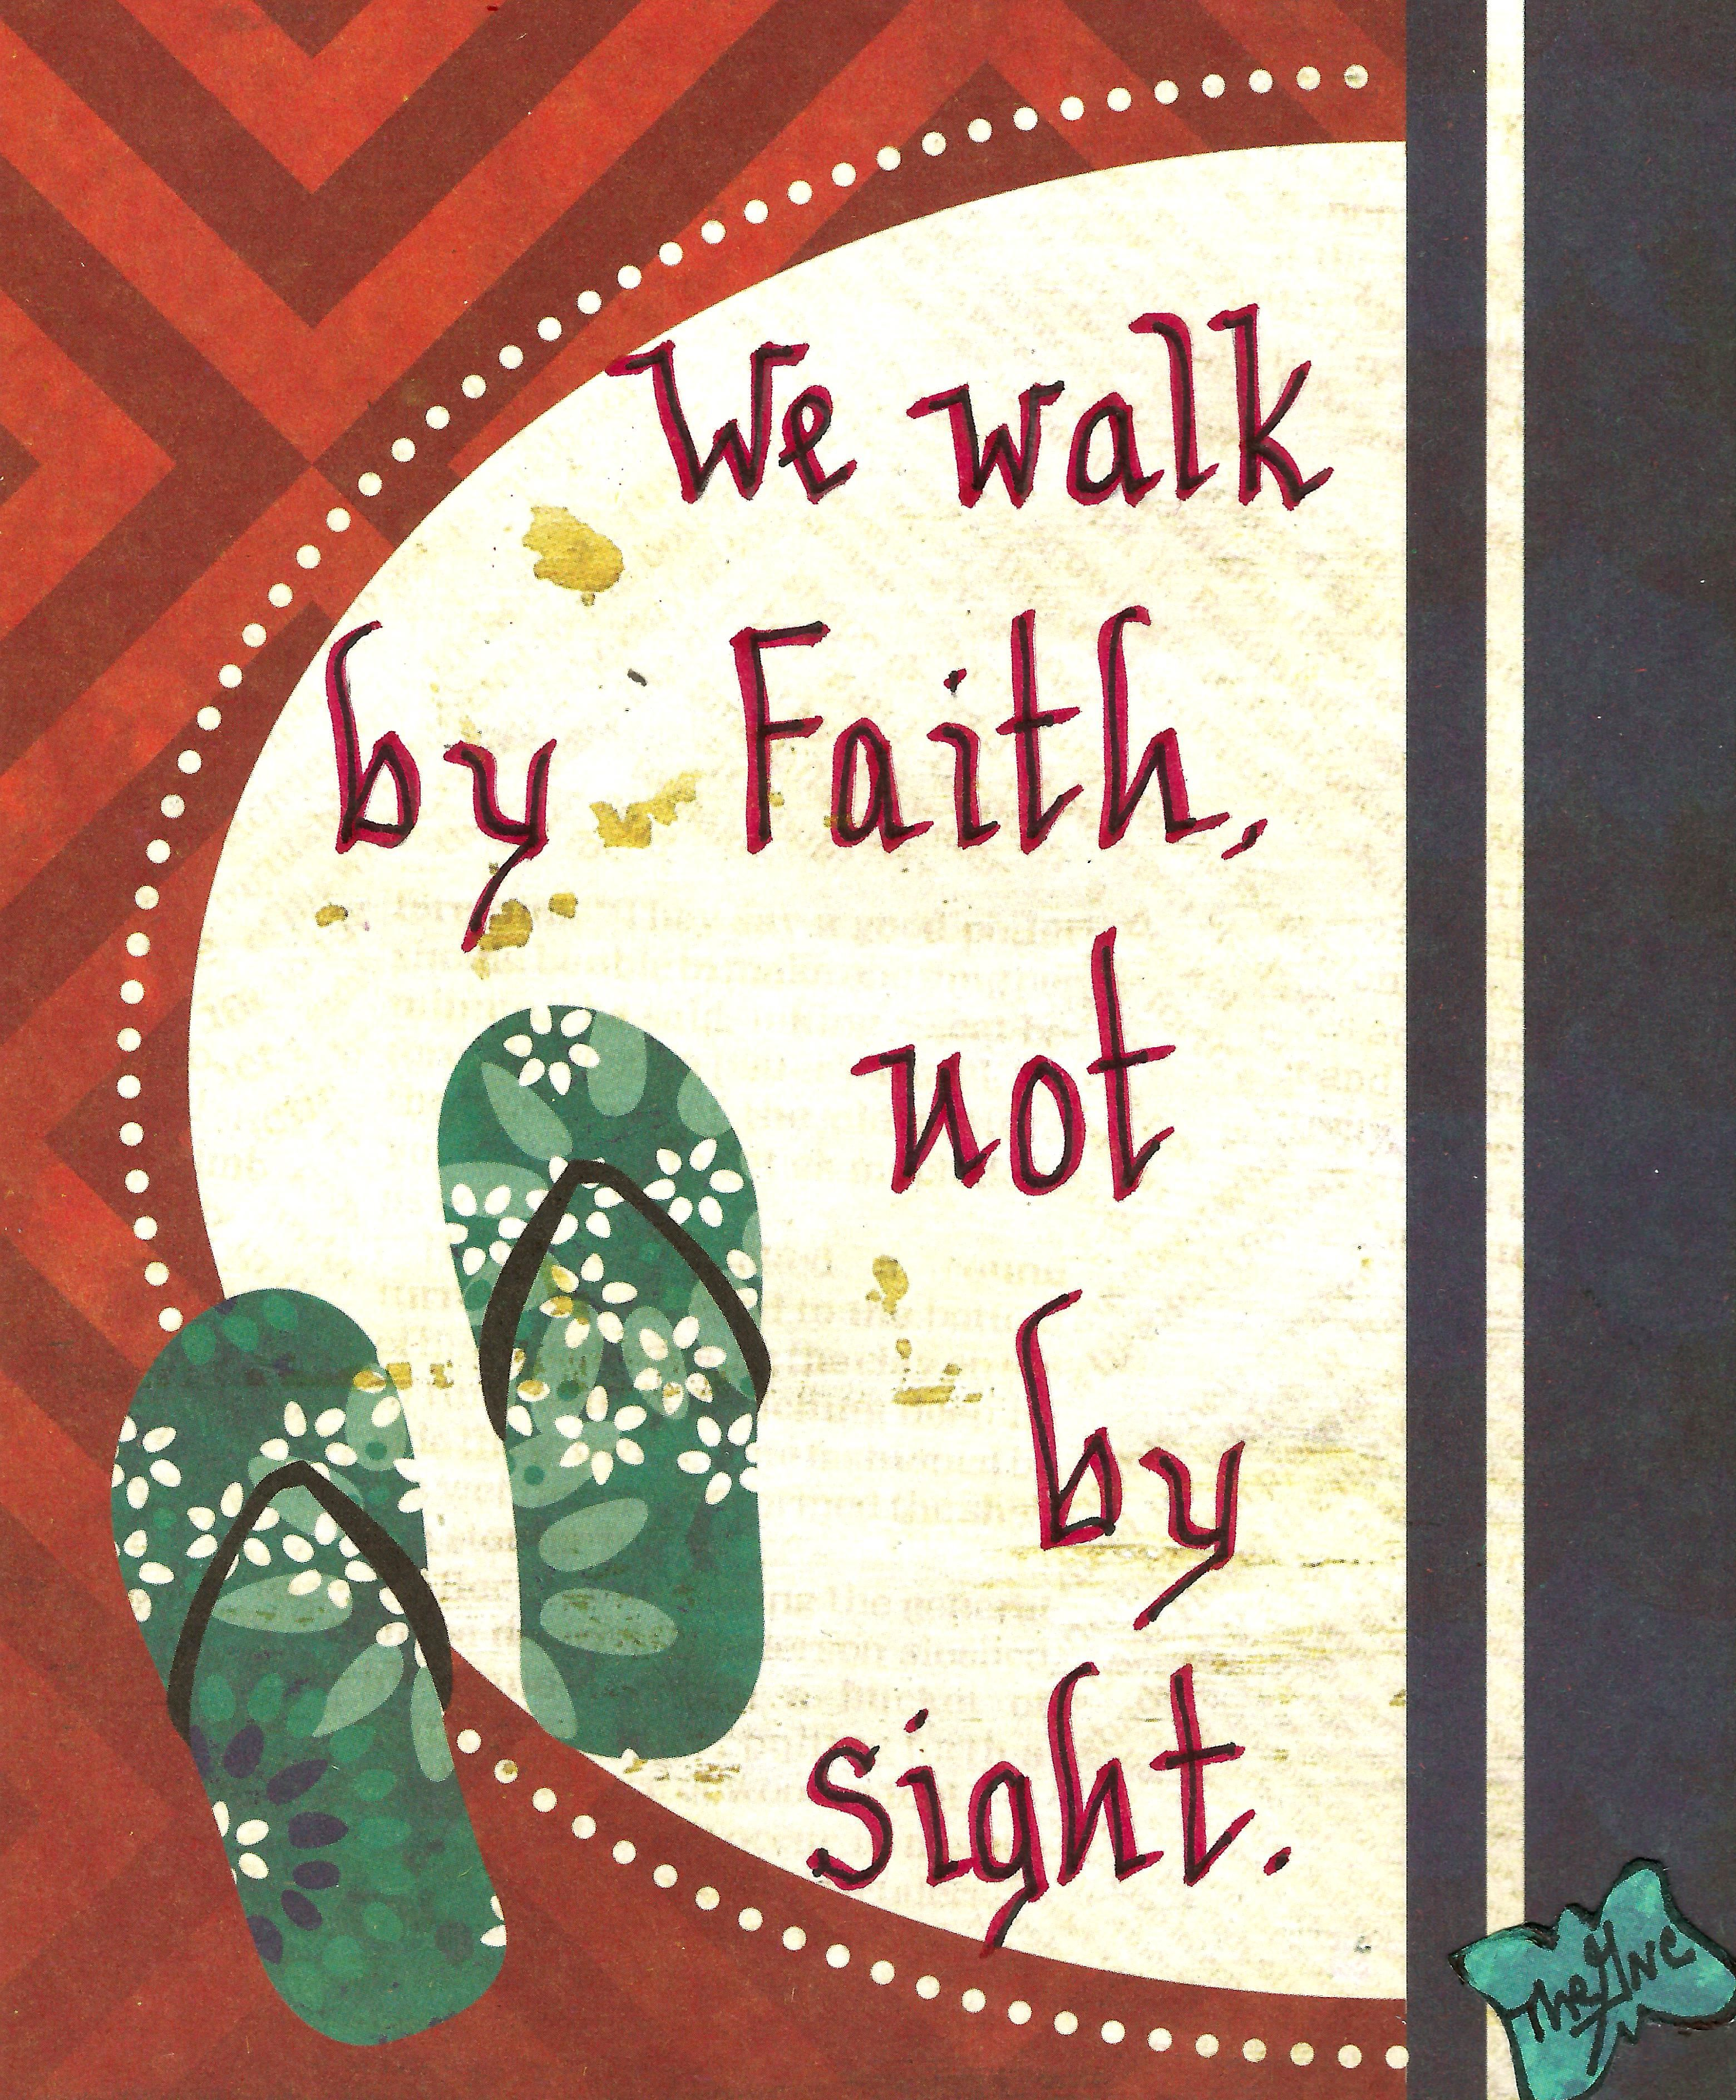 We walk by faith not by sight ...